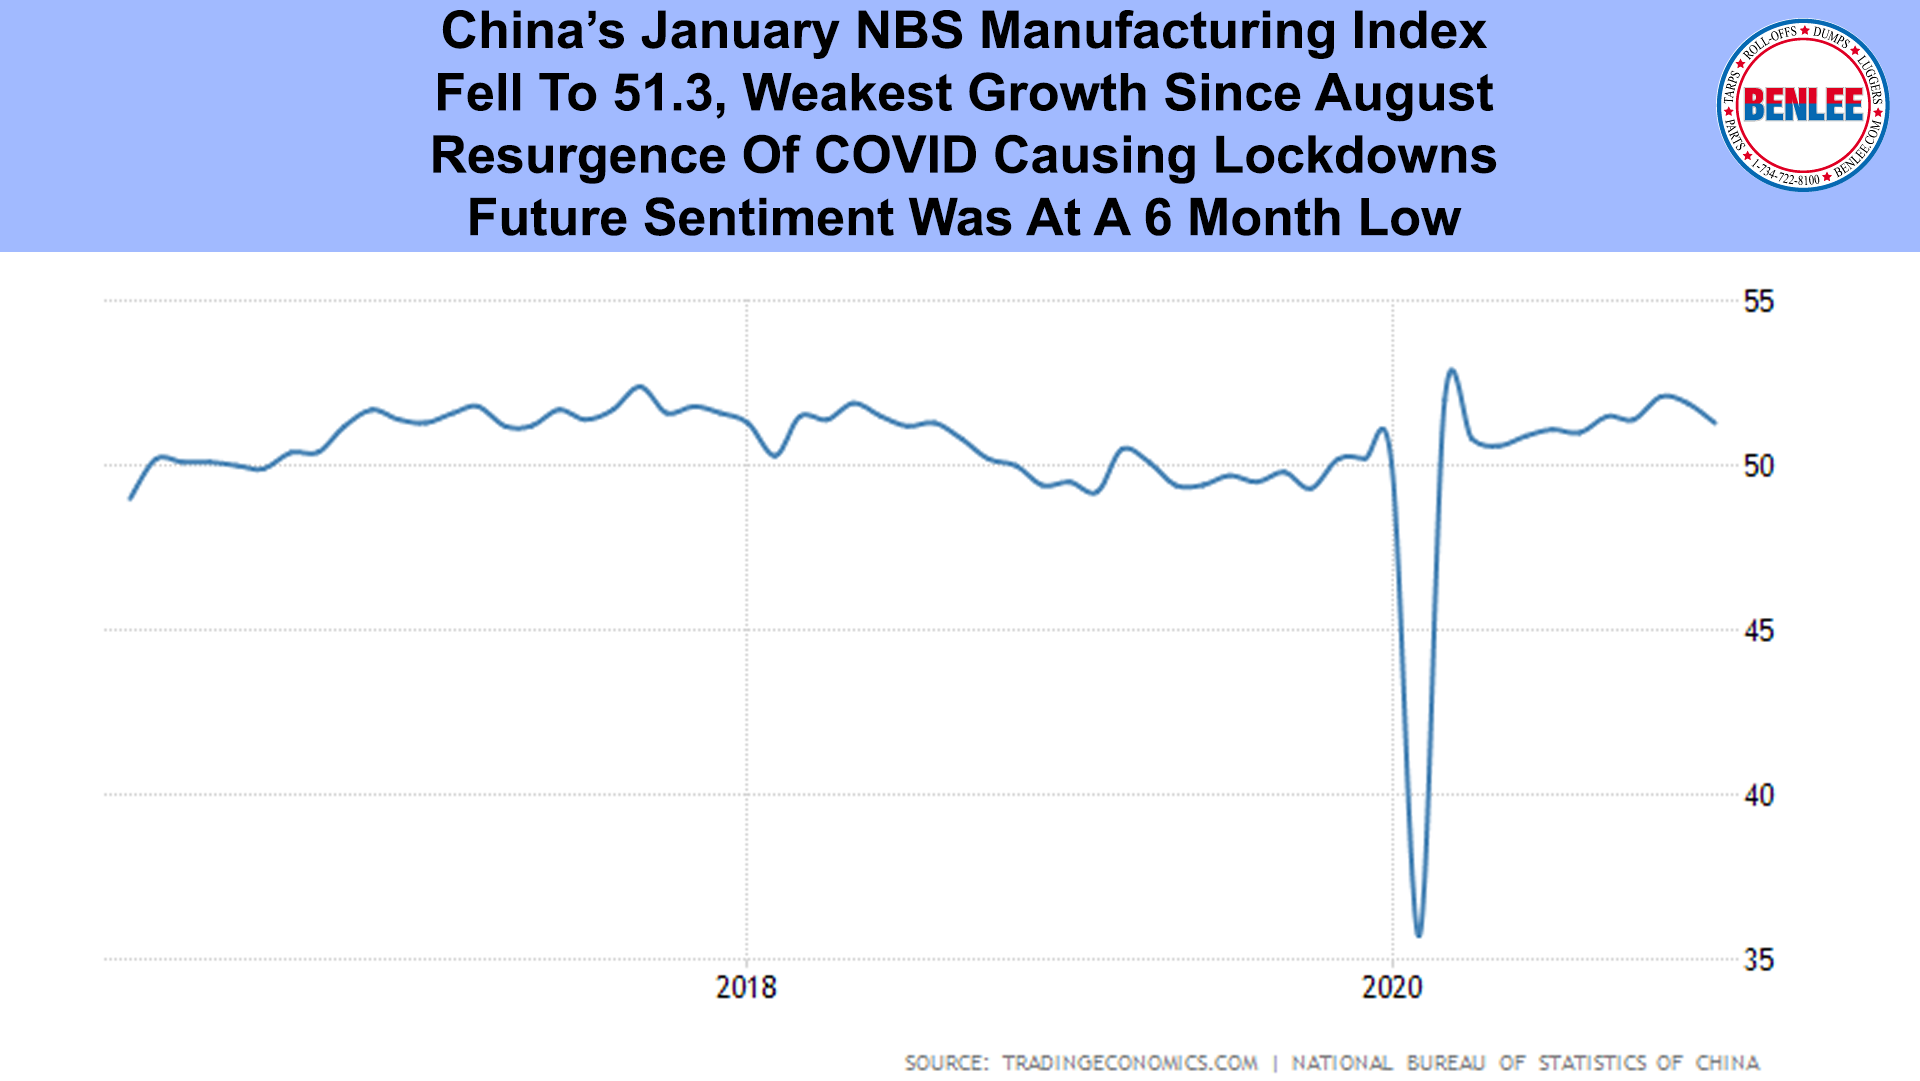 China's January NBS Manufacturing Index